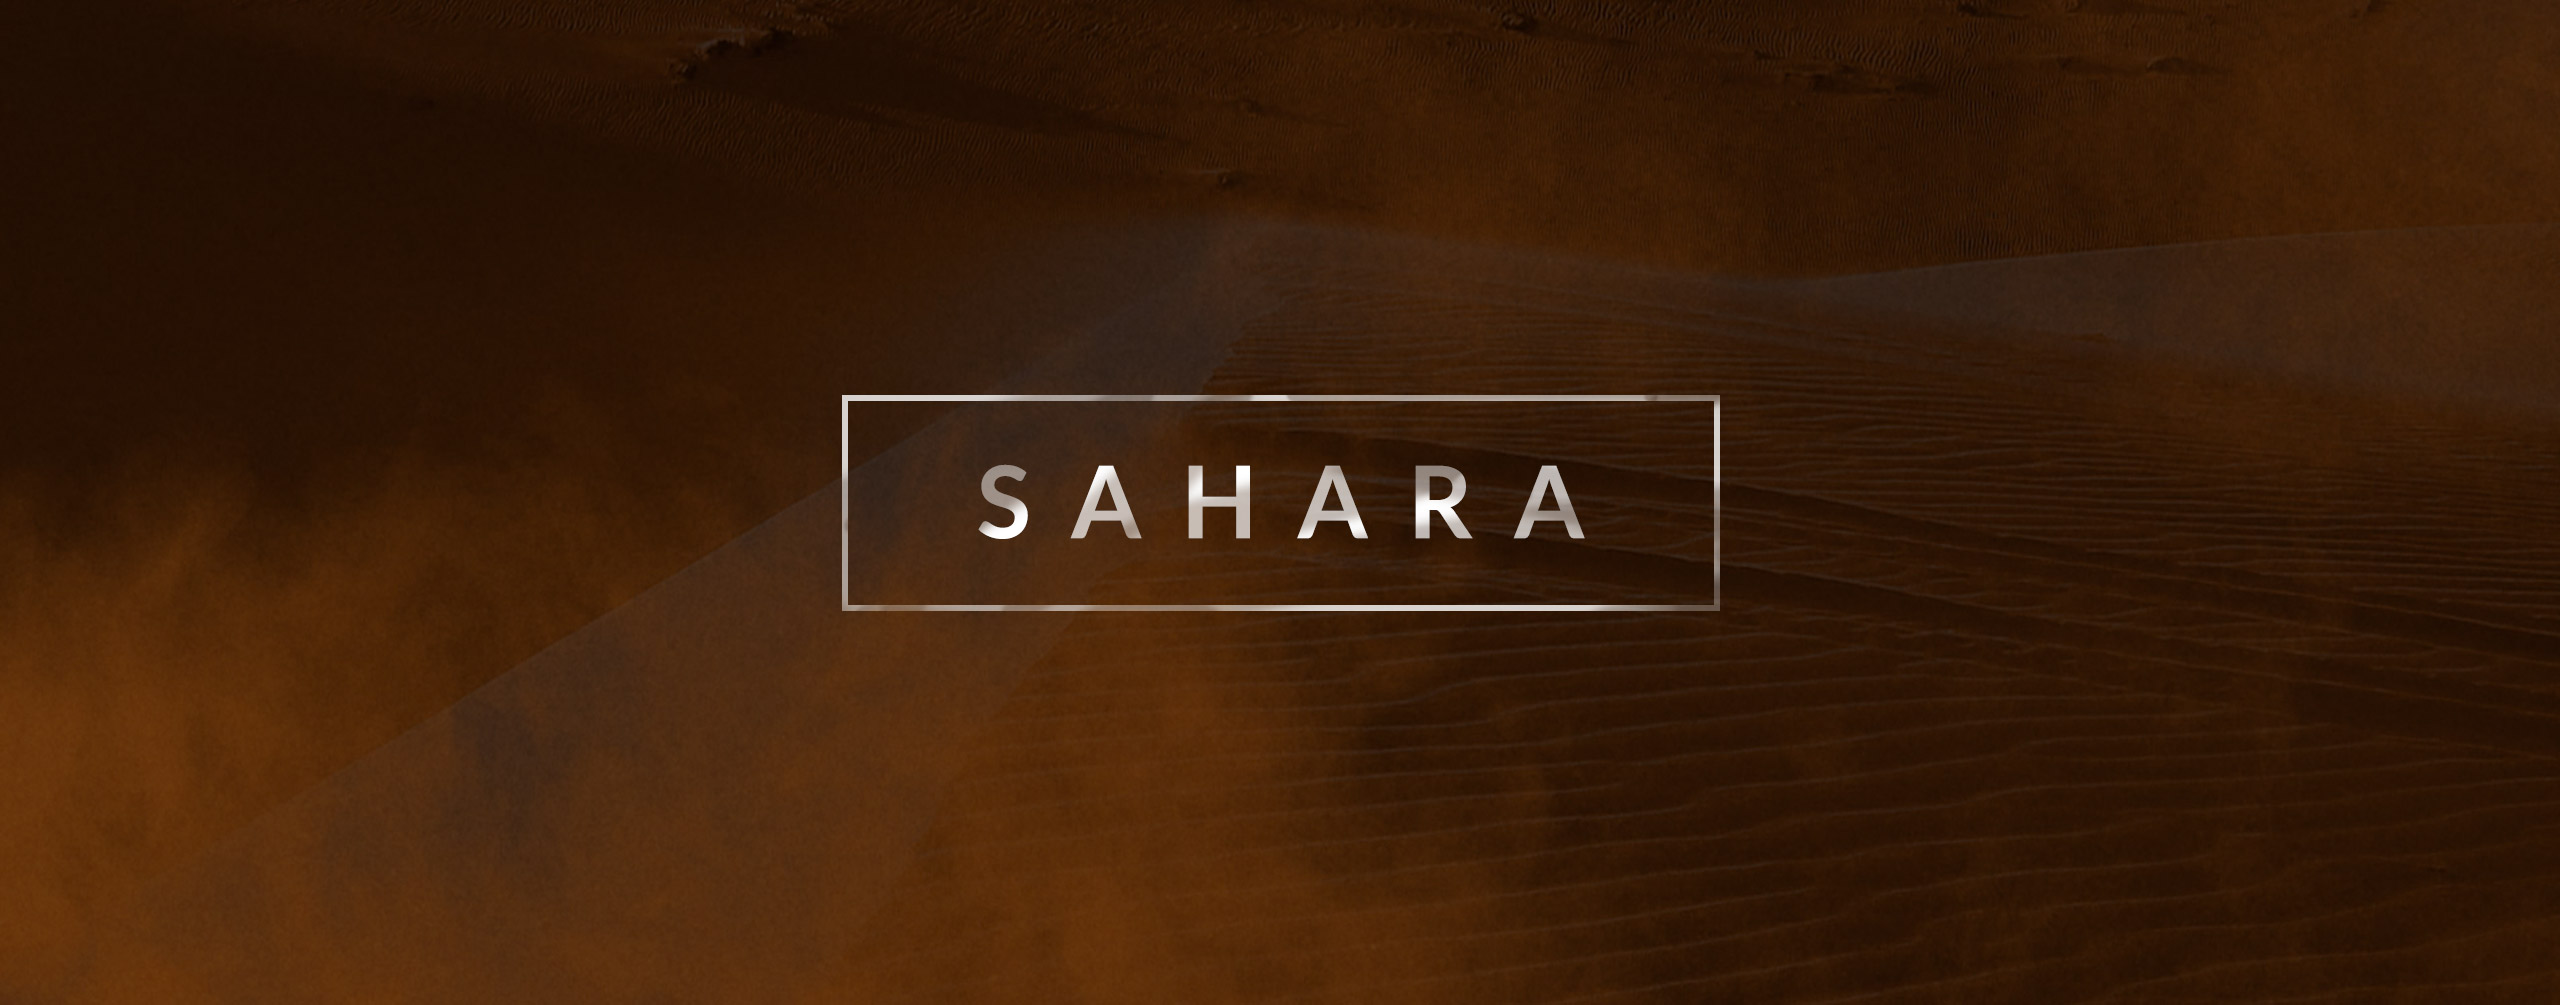 Sahara - Sand and Dust Effects